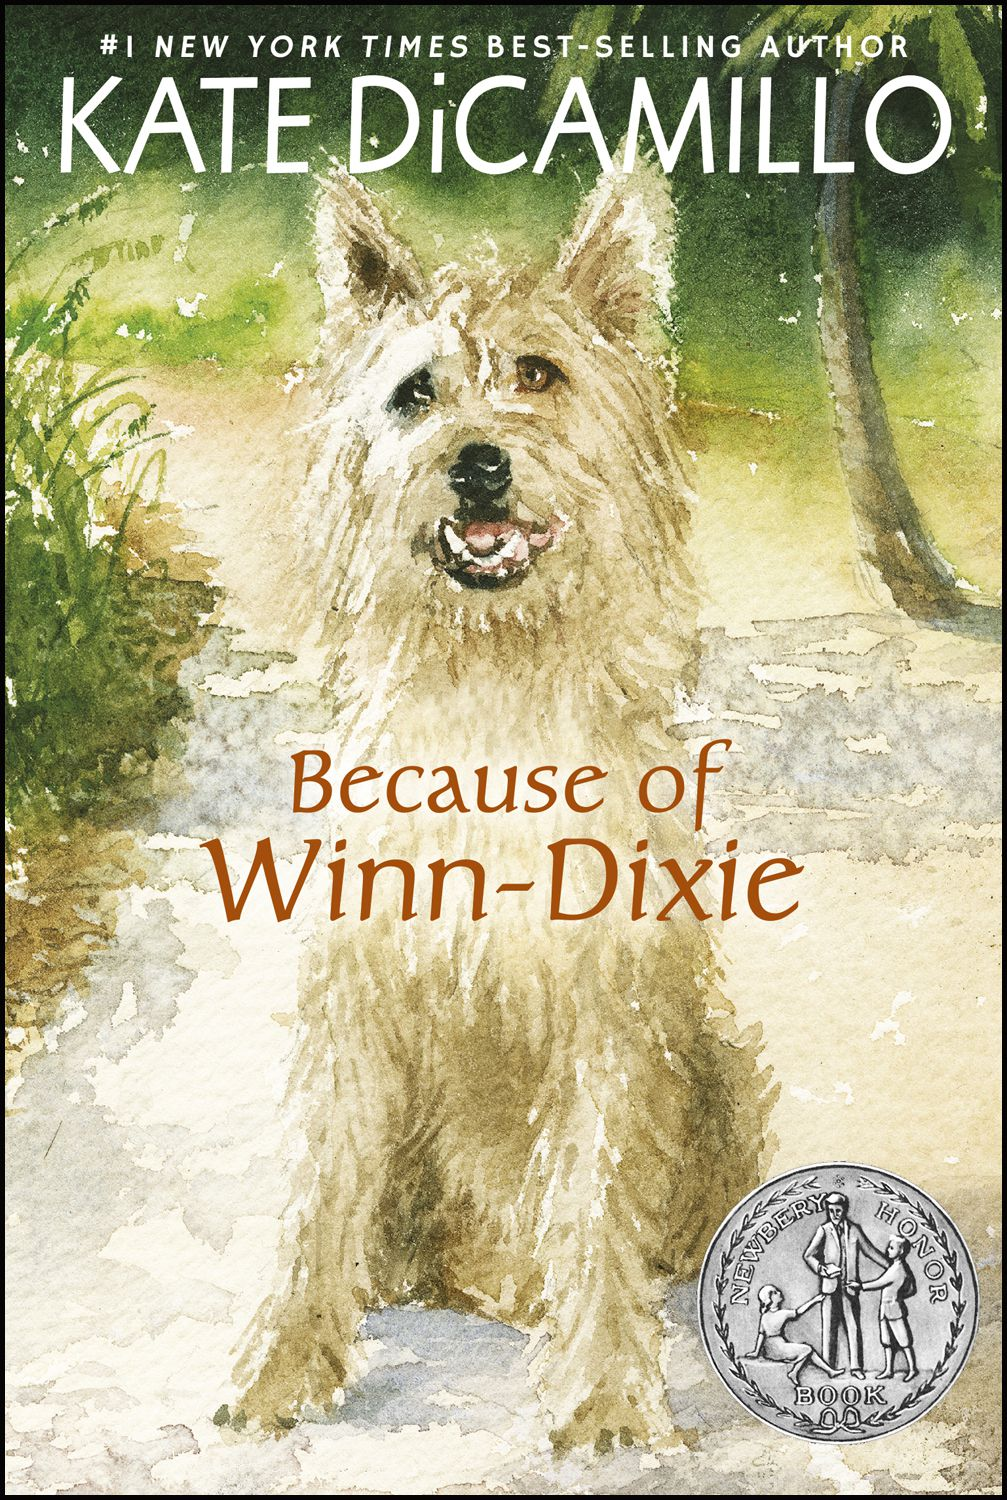 Because of Winn-Dixie by Kate DiCamillo, Book and Movie